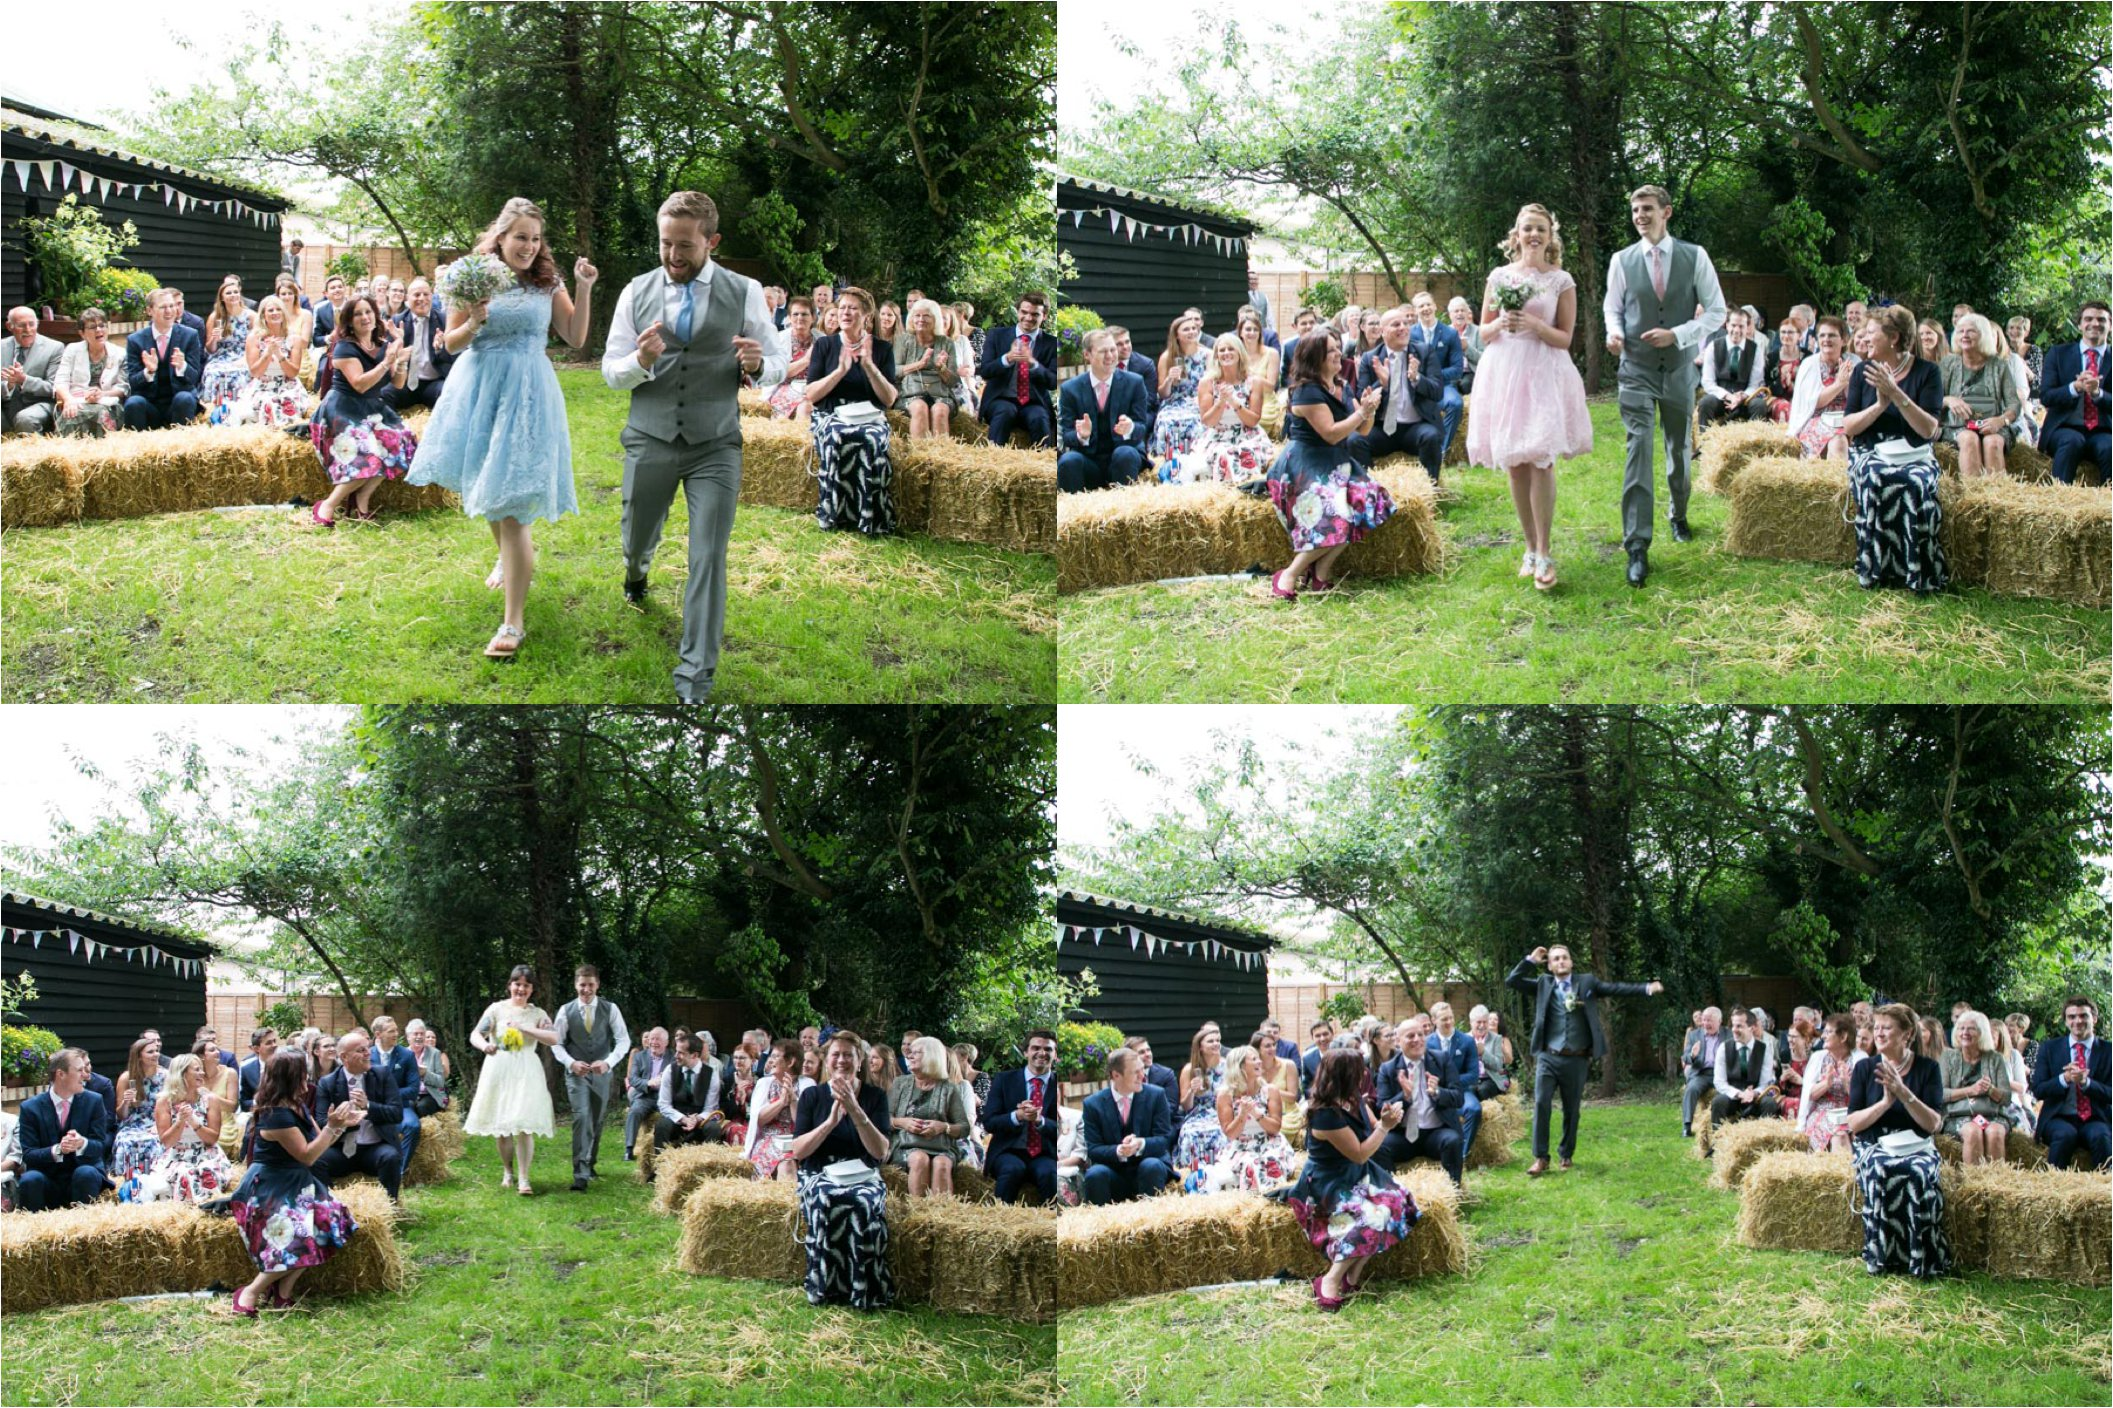 dancing down the out door aisle to wedding, suffolk farm wedding